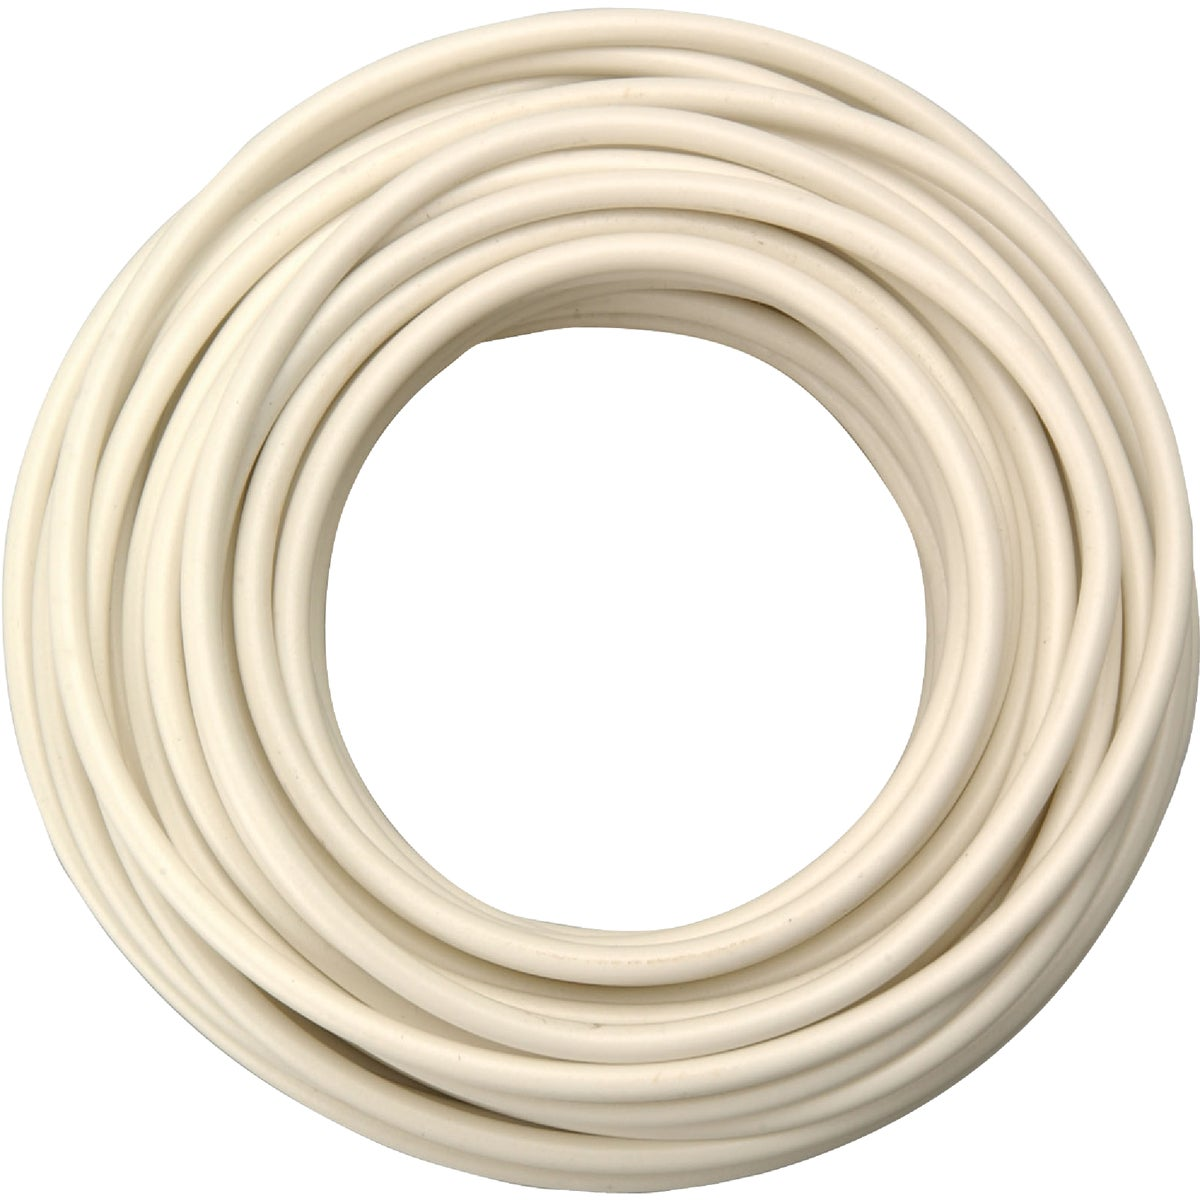 33' 18GA WHT AUTO WIRE - 18-1-17 by Woods Wire Coleman